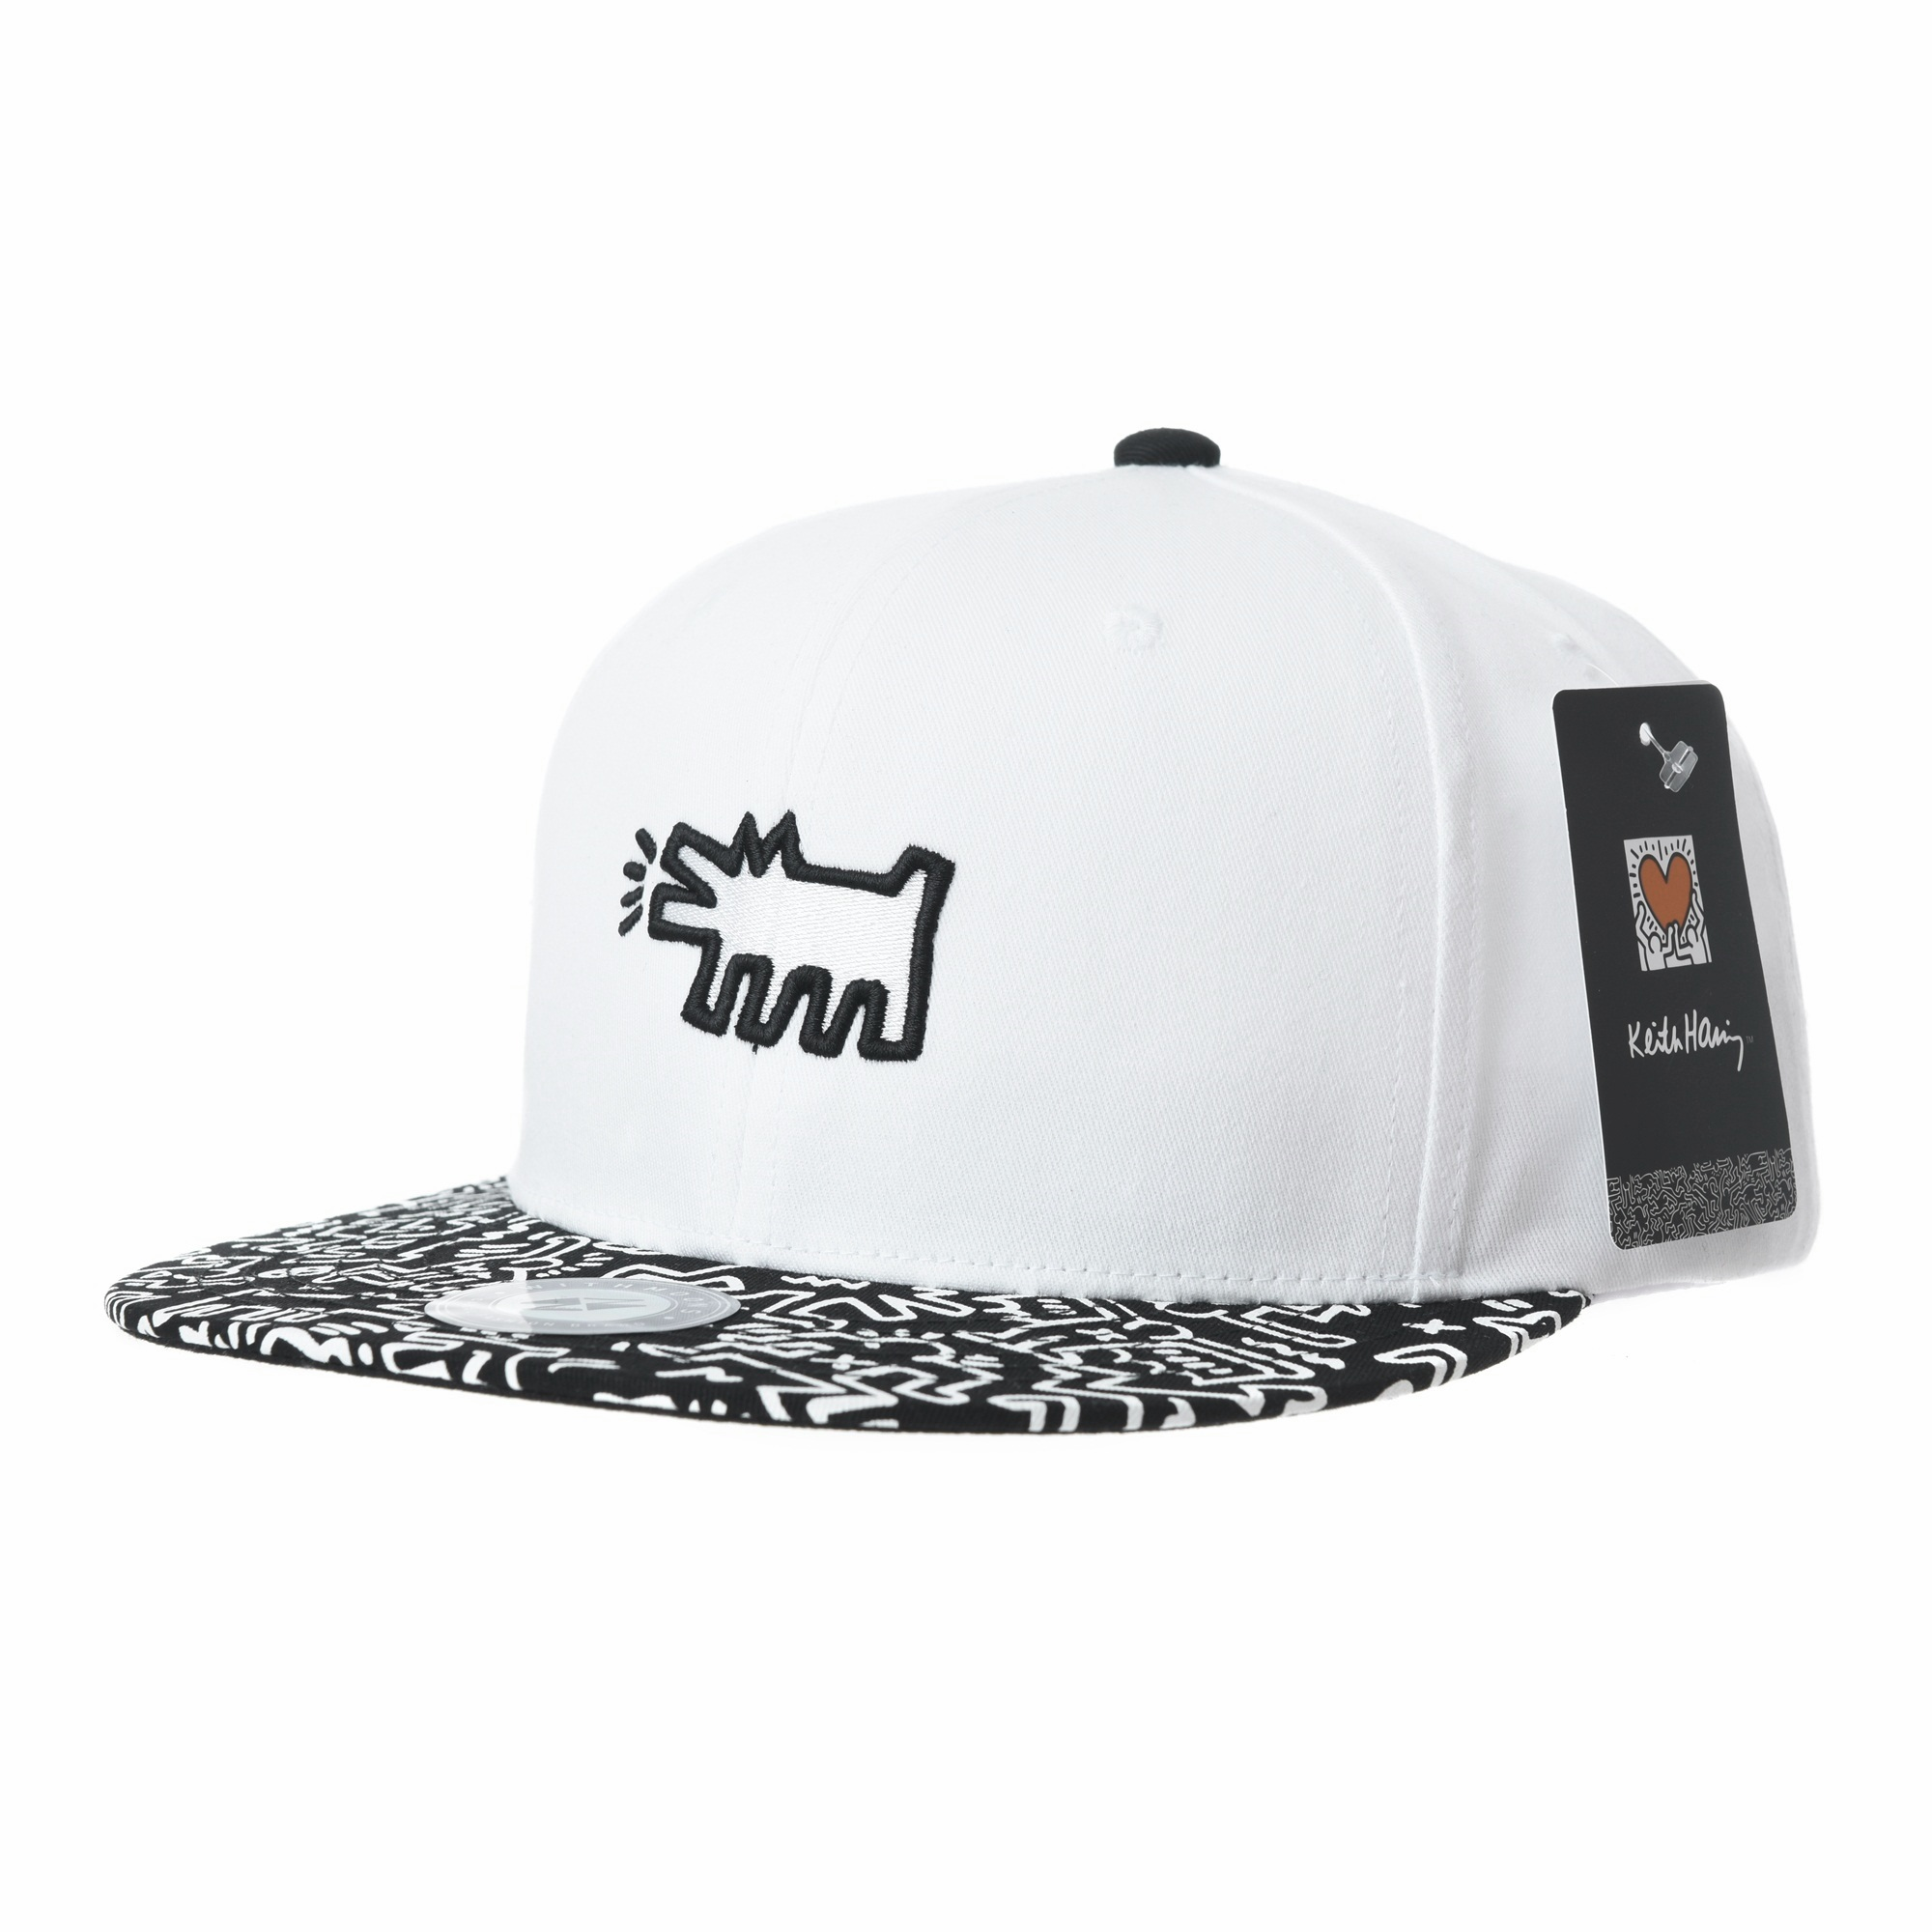 WITHMOONS Snapback Hat Keith Haring Pop Art Print Dog Embroidery Baseball  Cap CR2953 (White) - Walmart.com 553b739ad5e